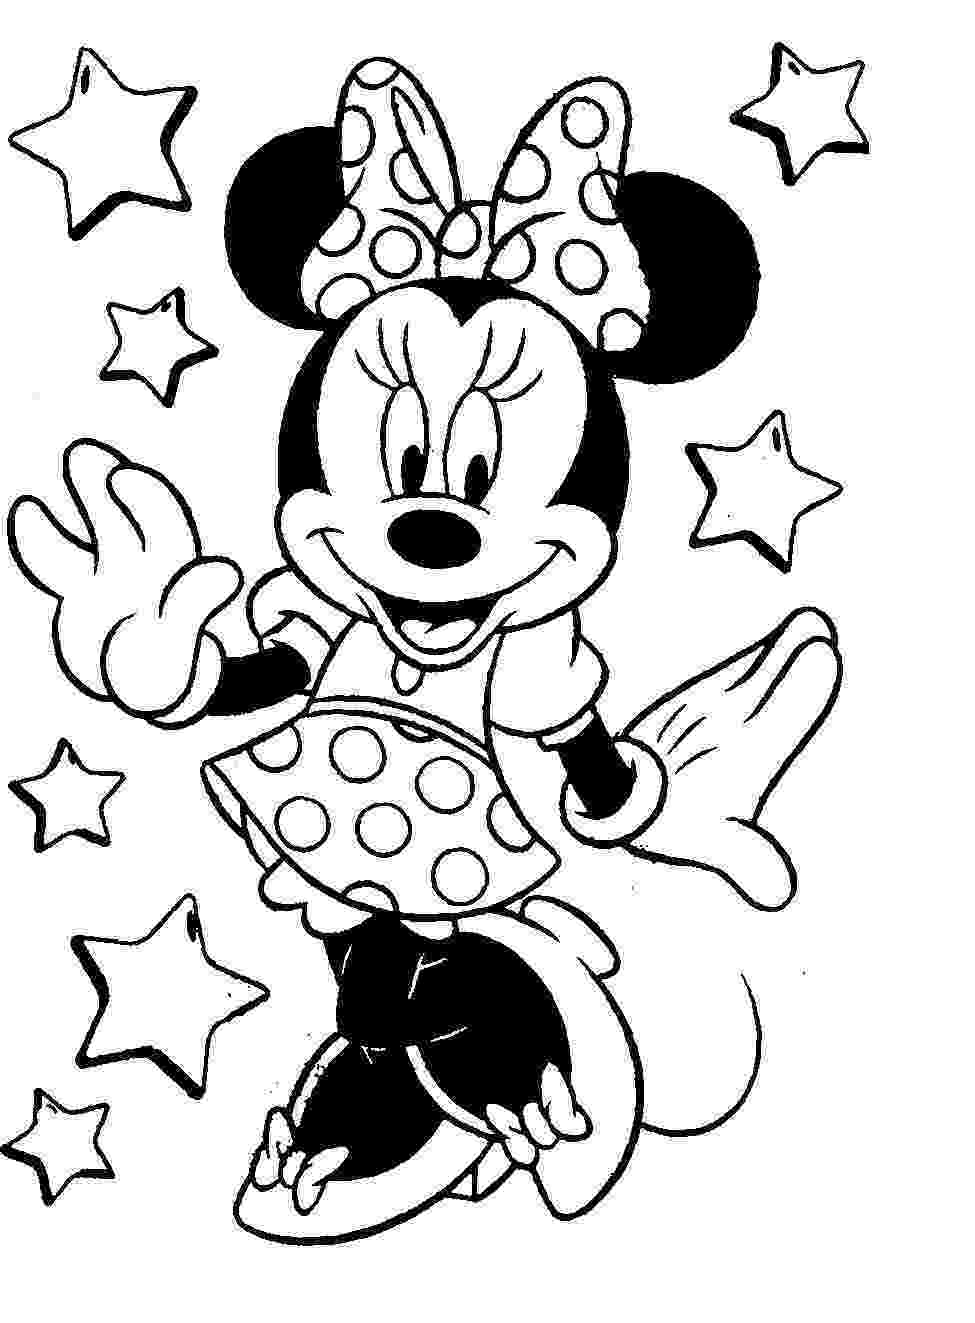 mickey and minnie colouring pages coloring pictures of minnie mouse google search pages colouring minnie and mickey